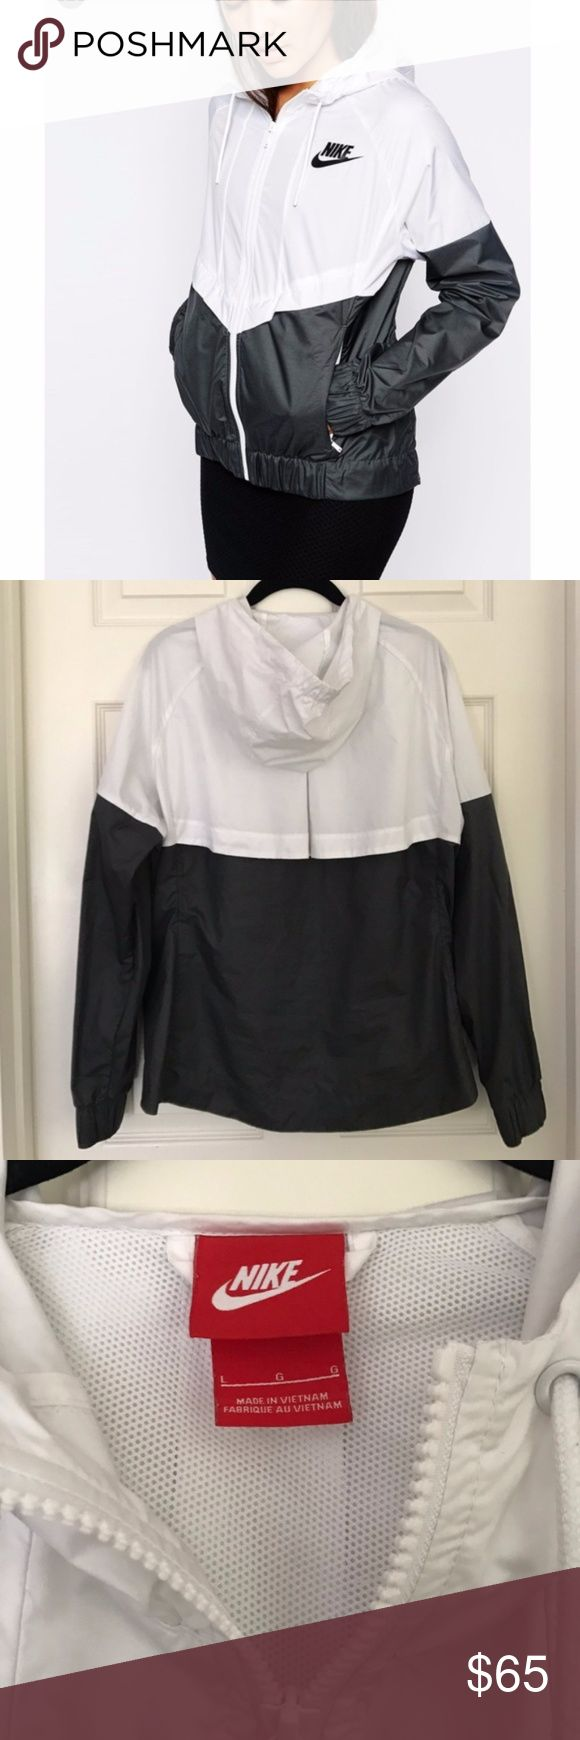 Nike Windrunner Hooded Zip Up Jacket Black + white nylon jacket with hood and side pockets. Worn only a few times......in very good condition! RARE 50 ON OTHER APPS. - NO TRADES! Nike Jackets & Coats